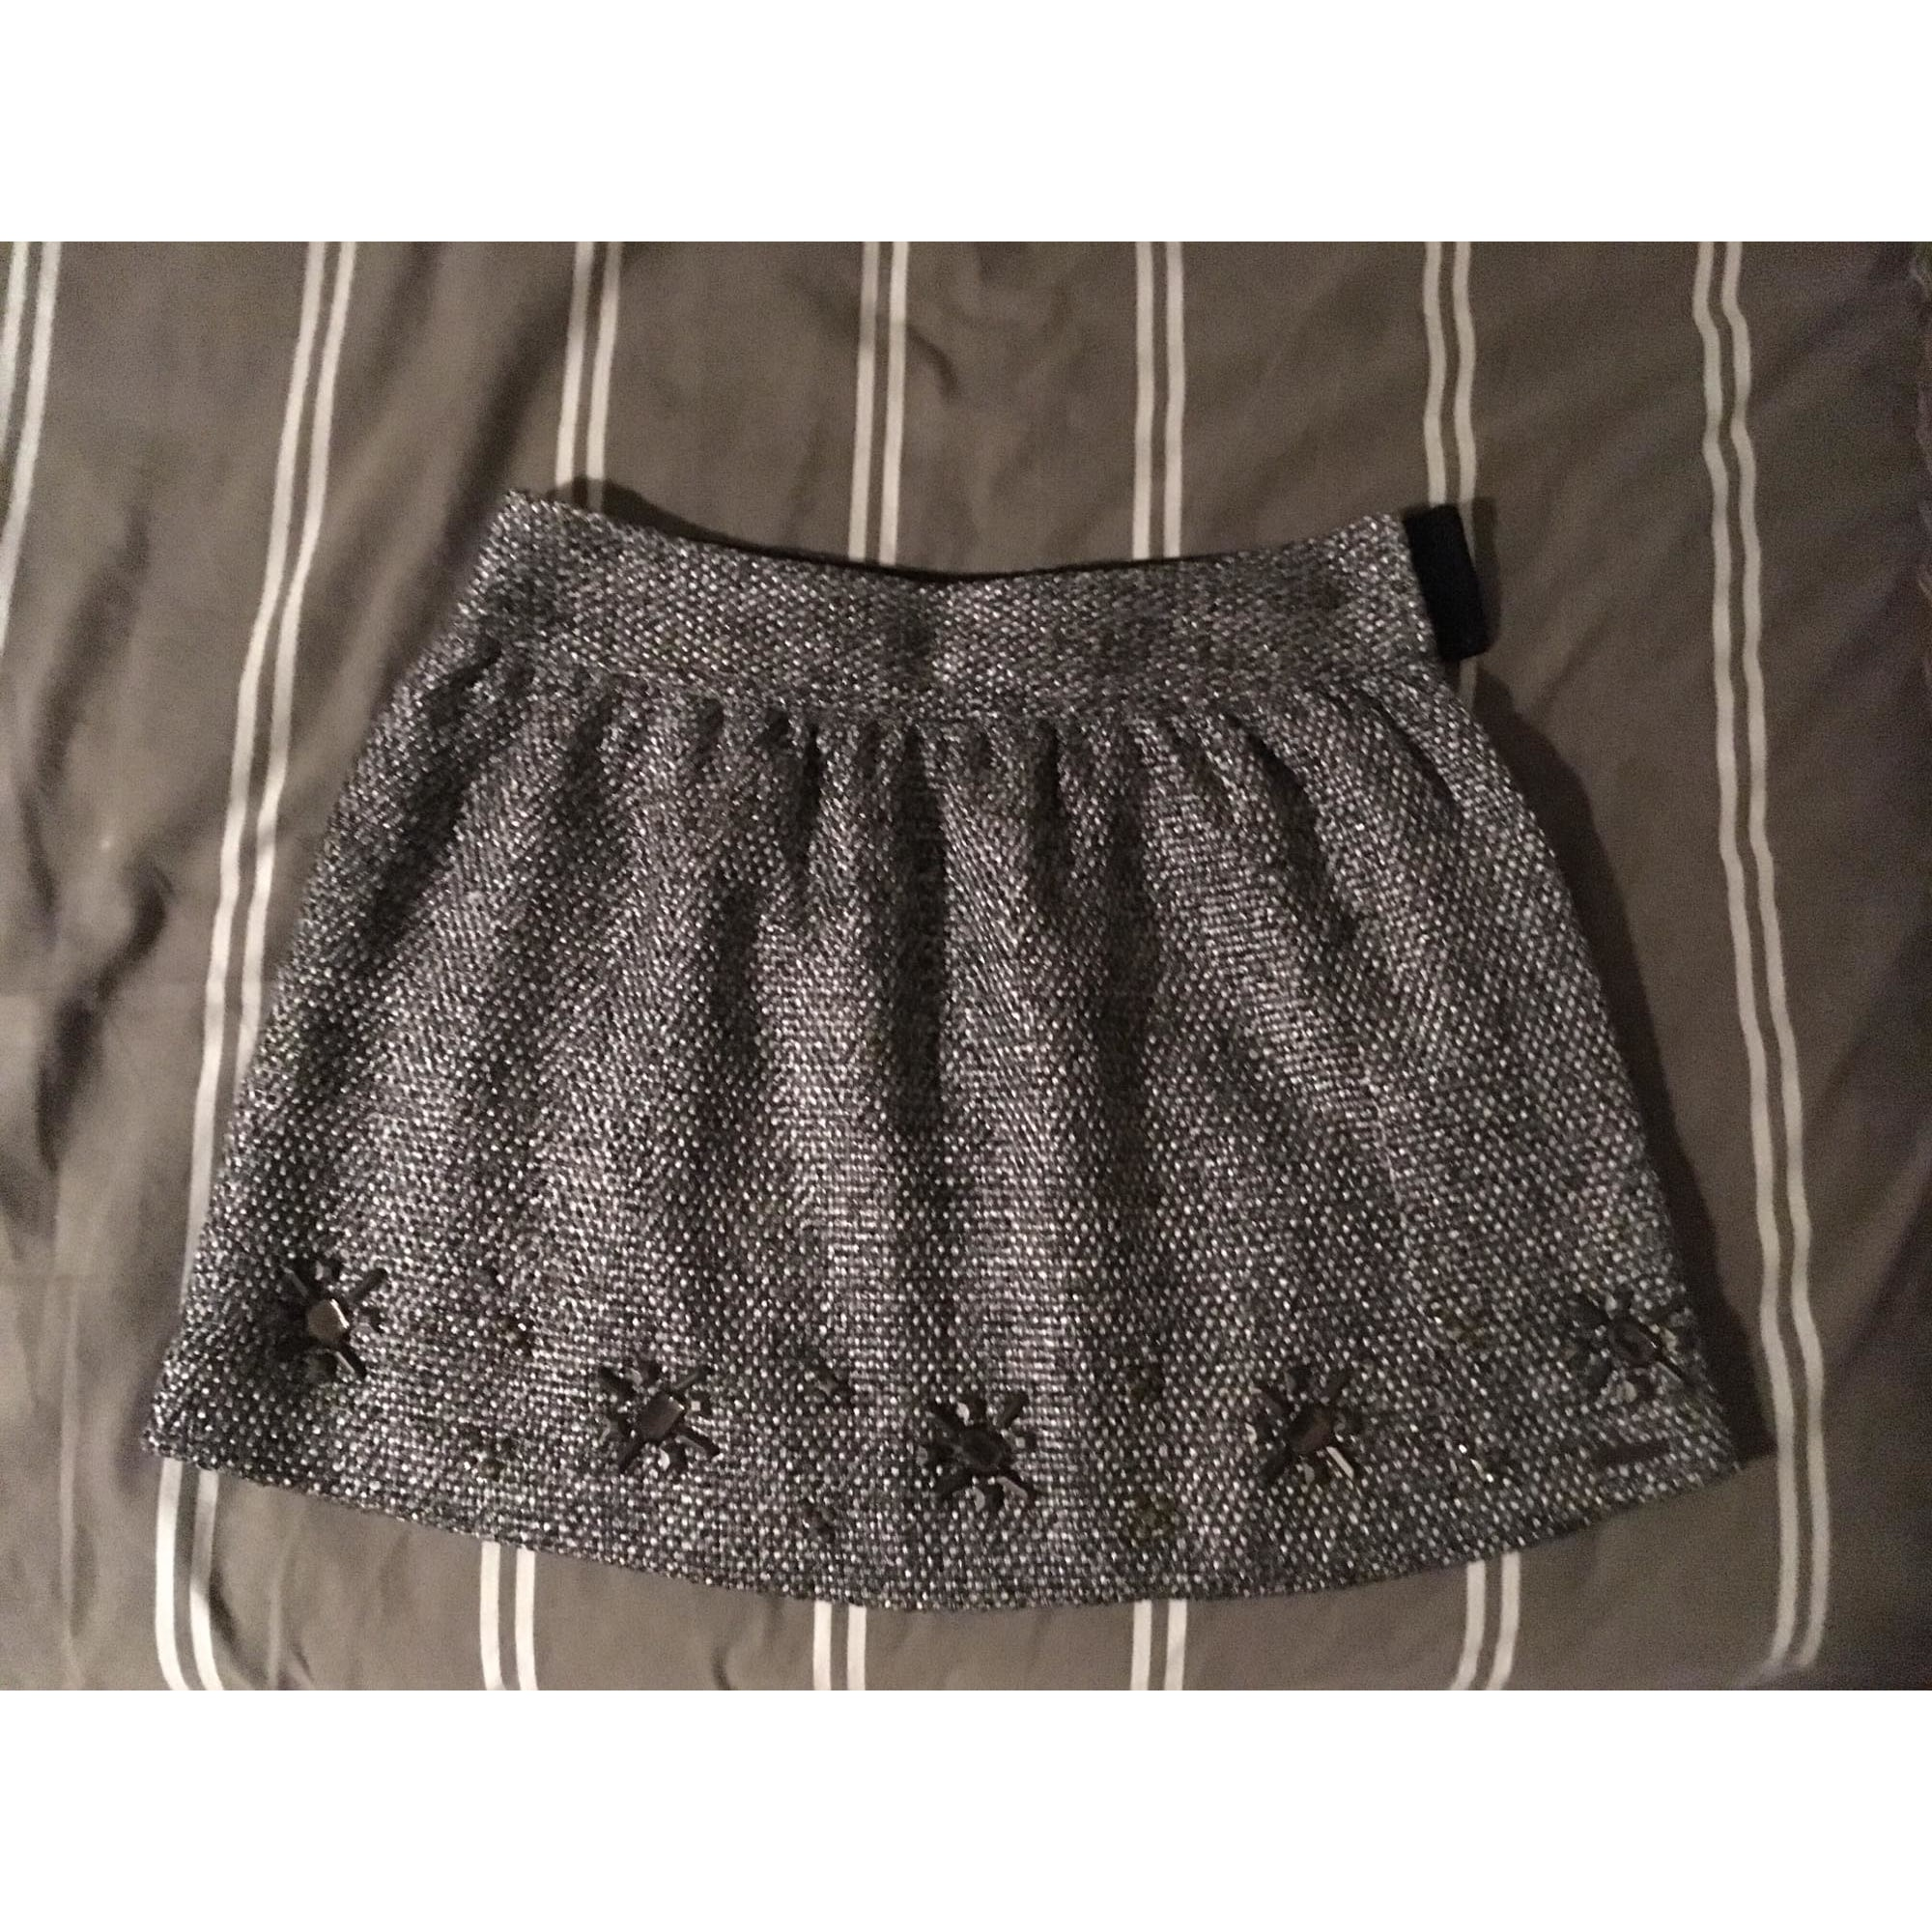 Jupe courte PEPE JEANS Gris, anthracite